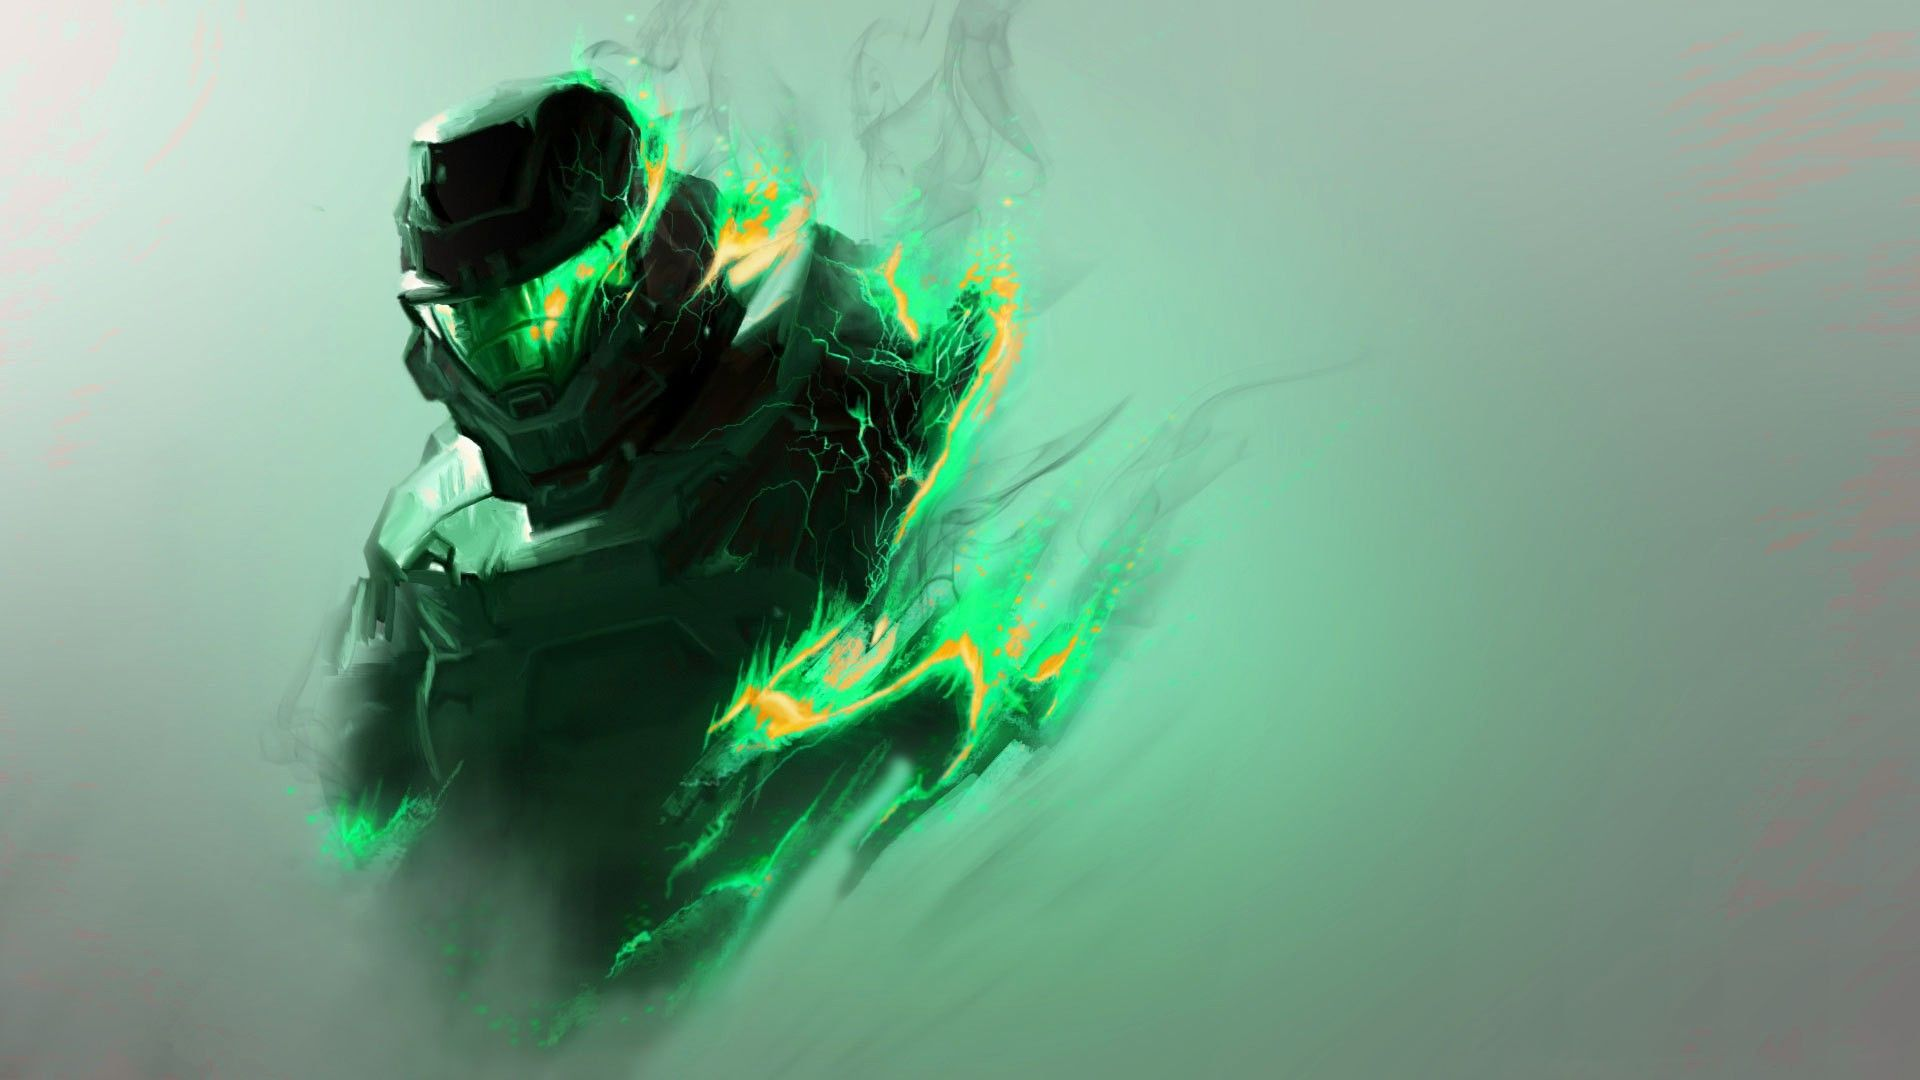 Halo Master Chief Wallpapers - Top Free Halo Master Chief ...